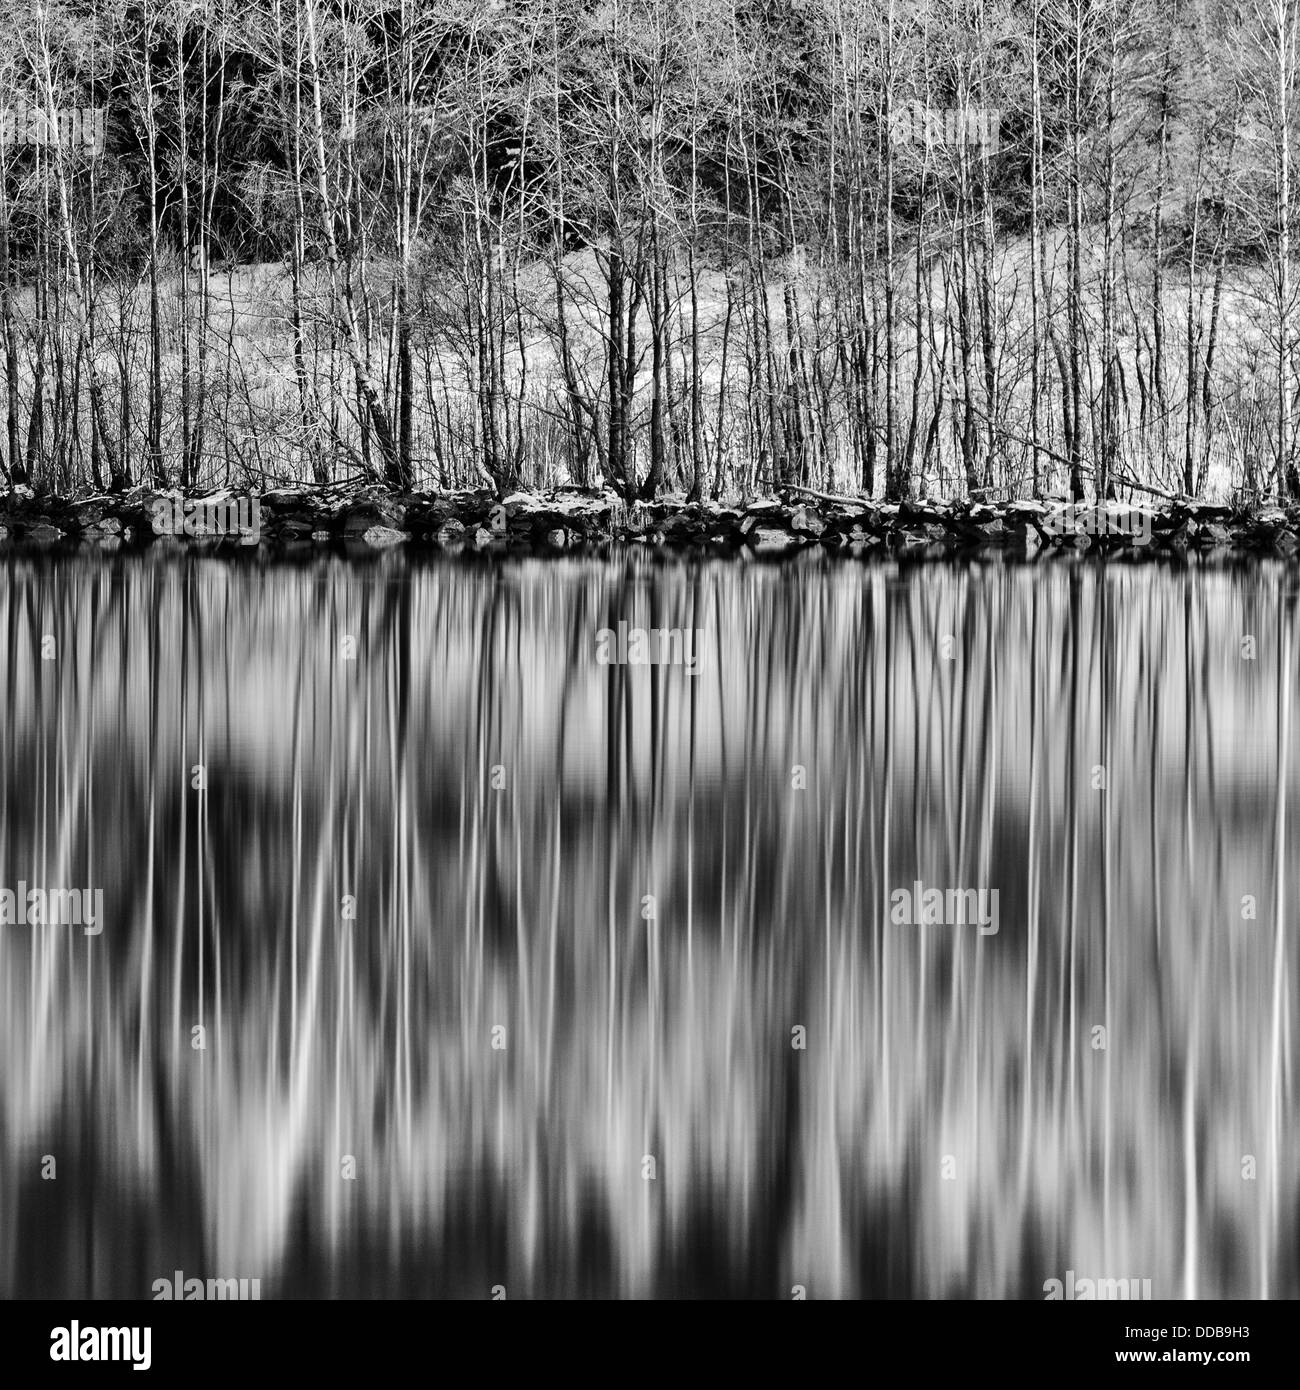 Trees reflected in water, Göta Älv, Sweden - Stock Image